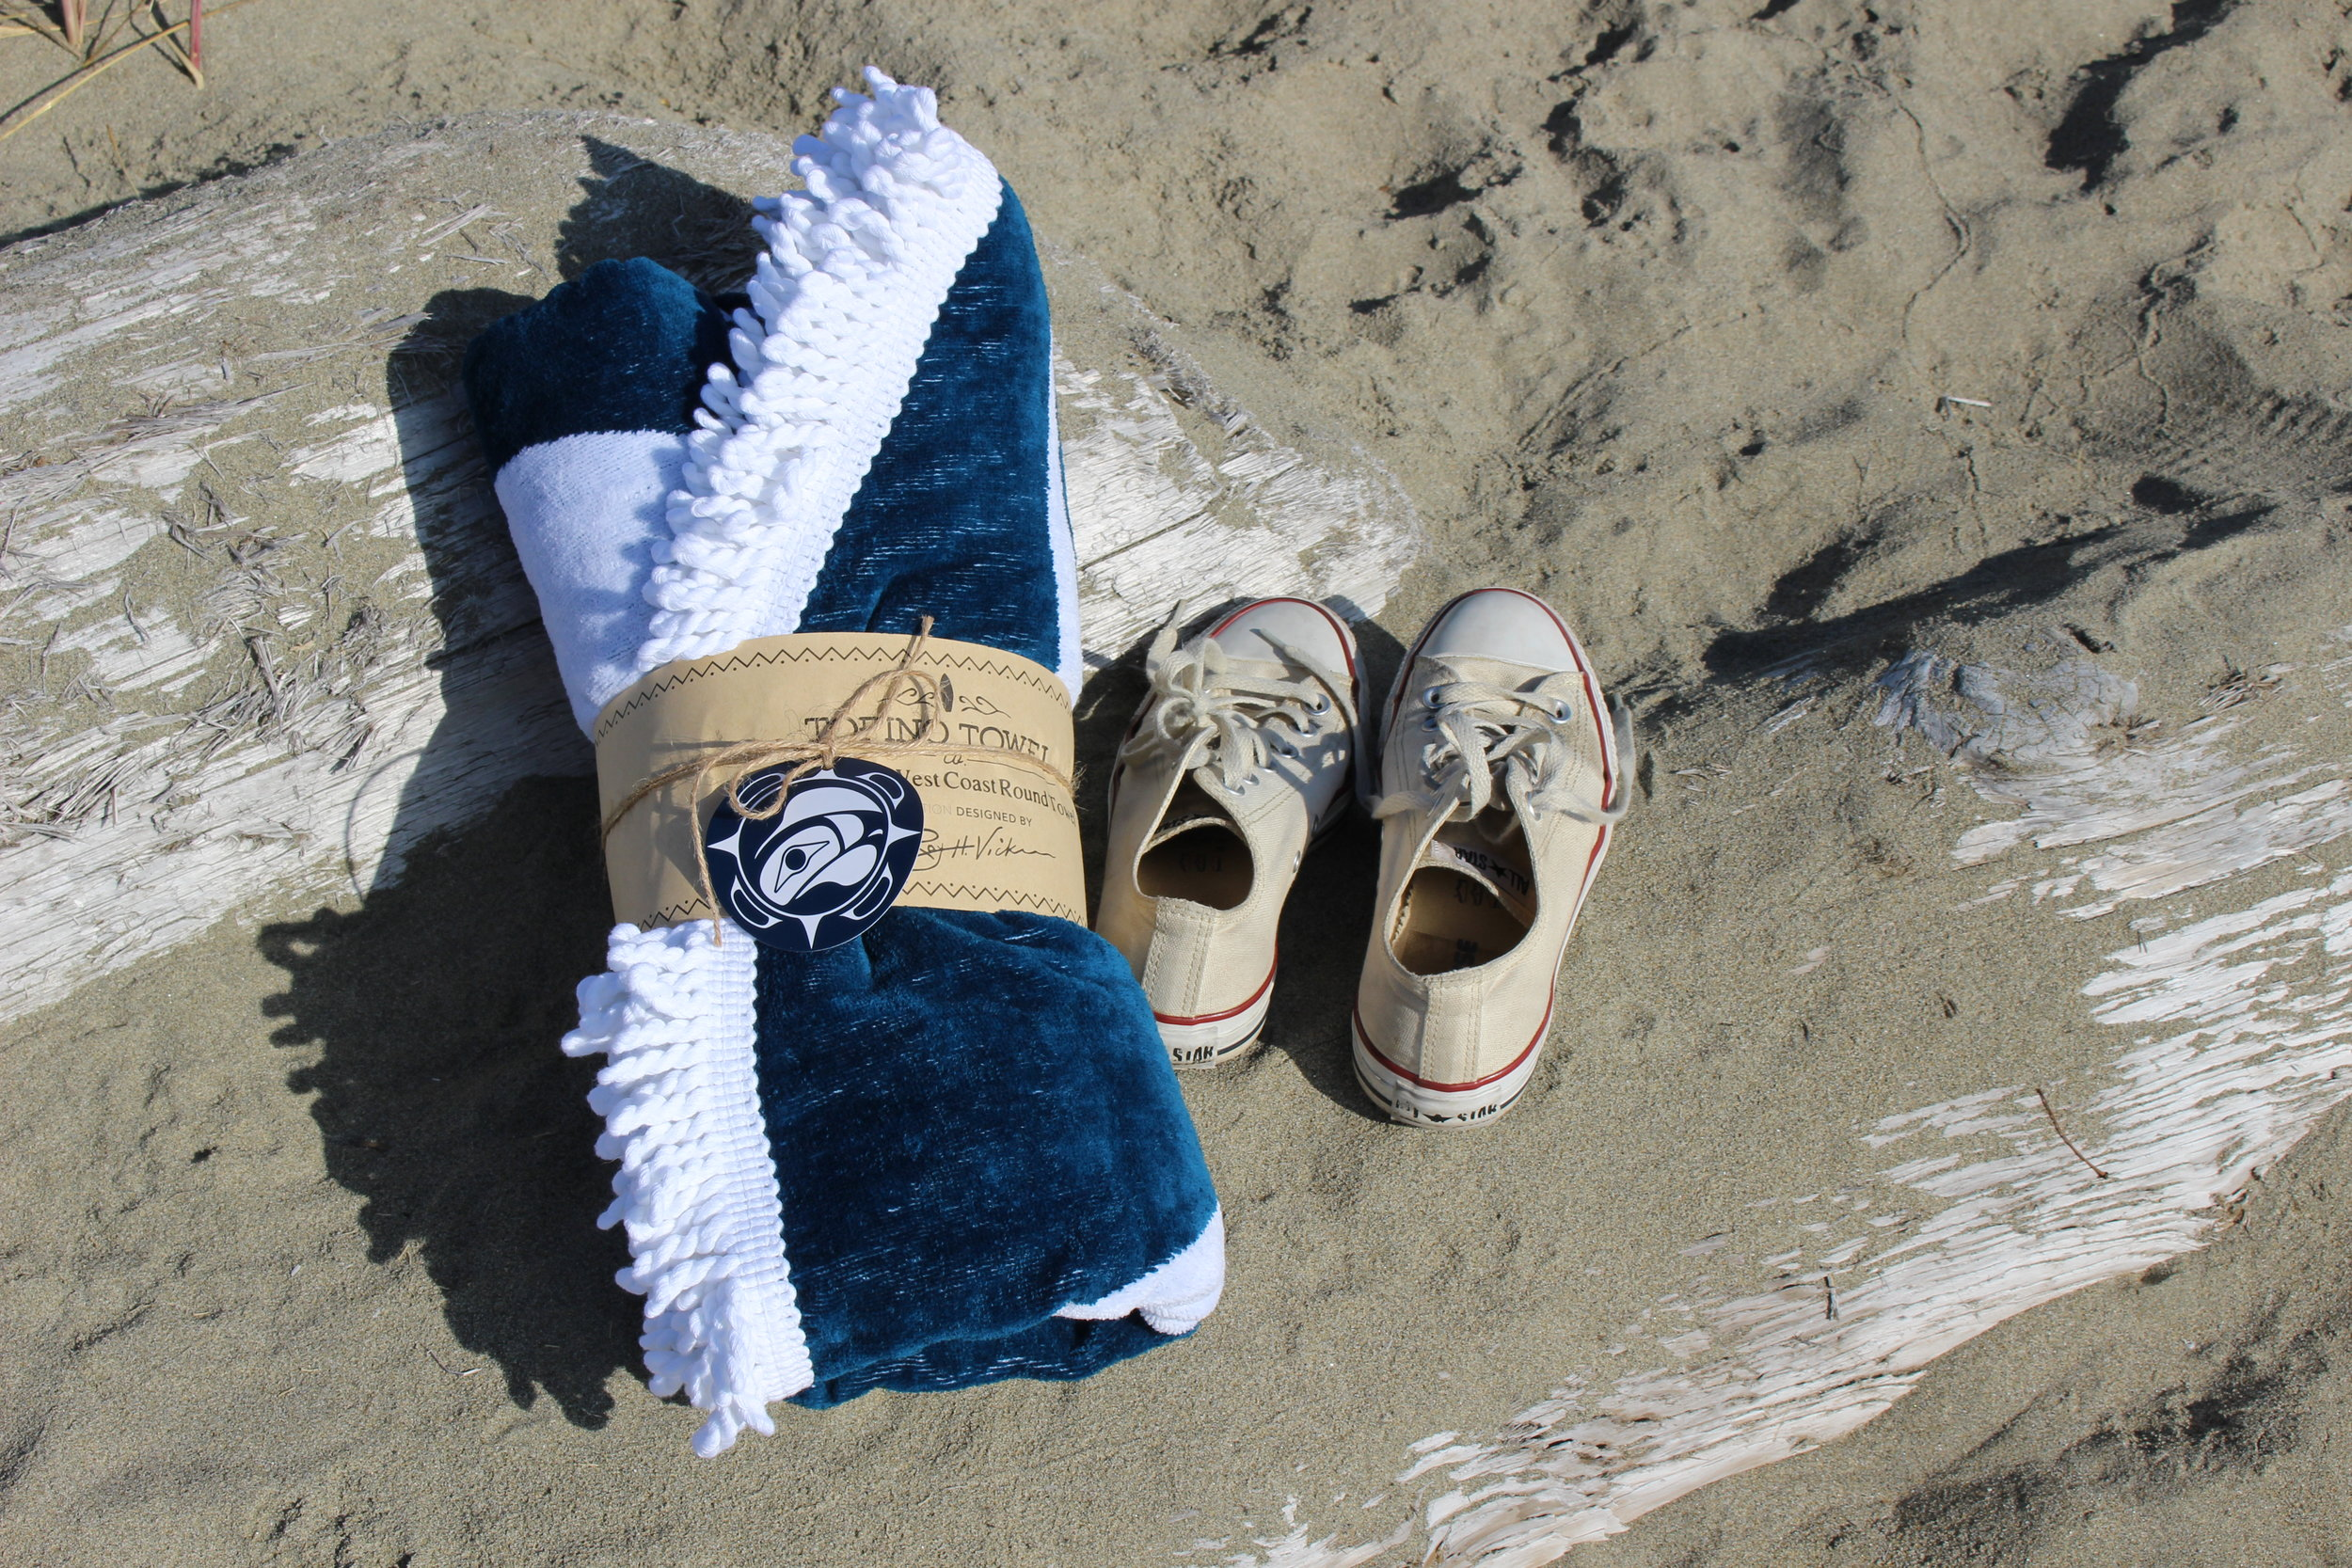 Limited Edition Roy Henry Vickers x Tofino Towel, Converse Sneakers